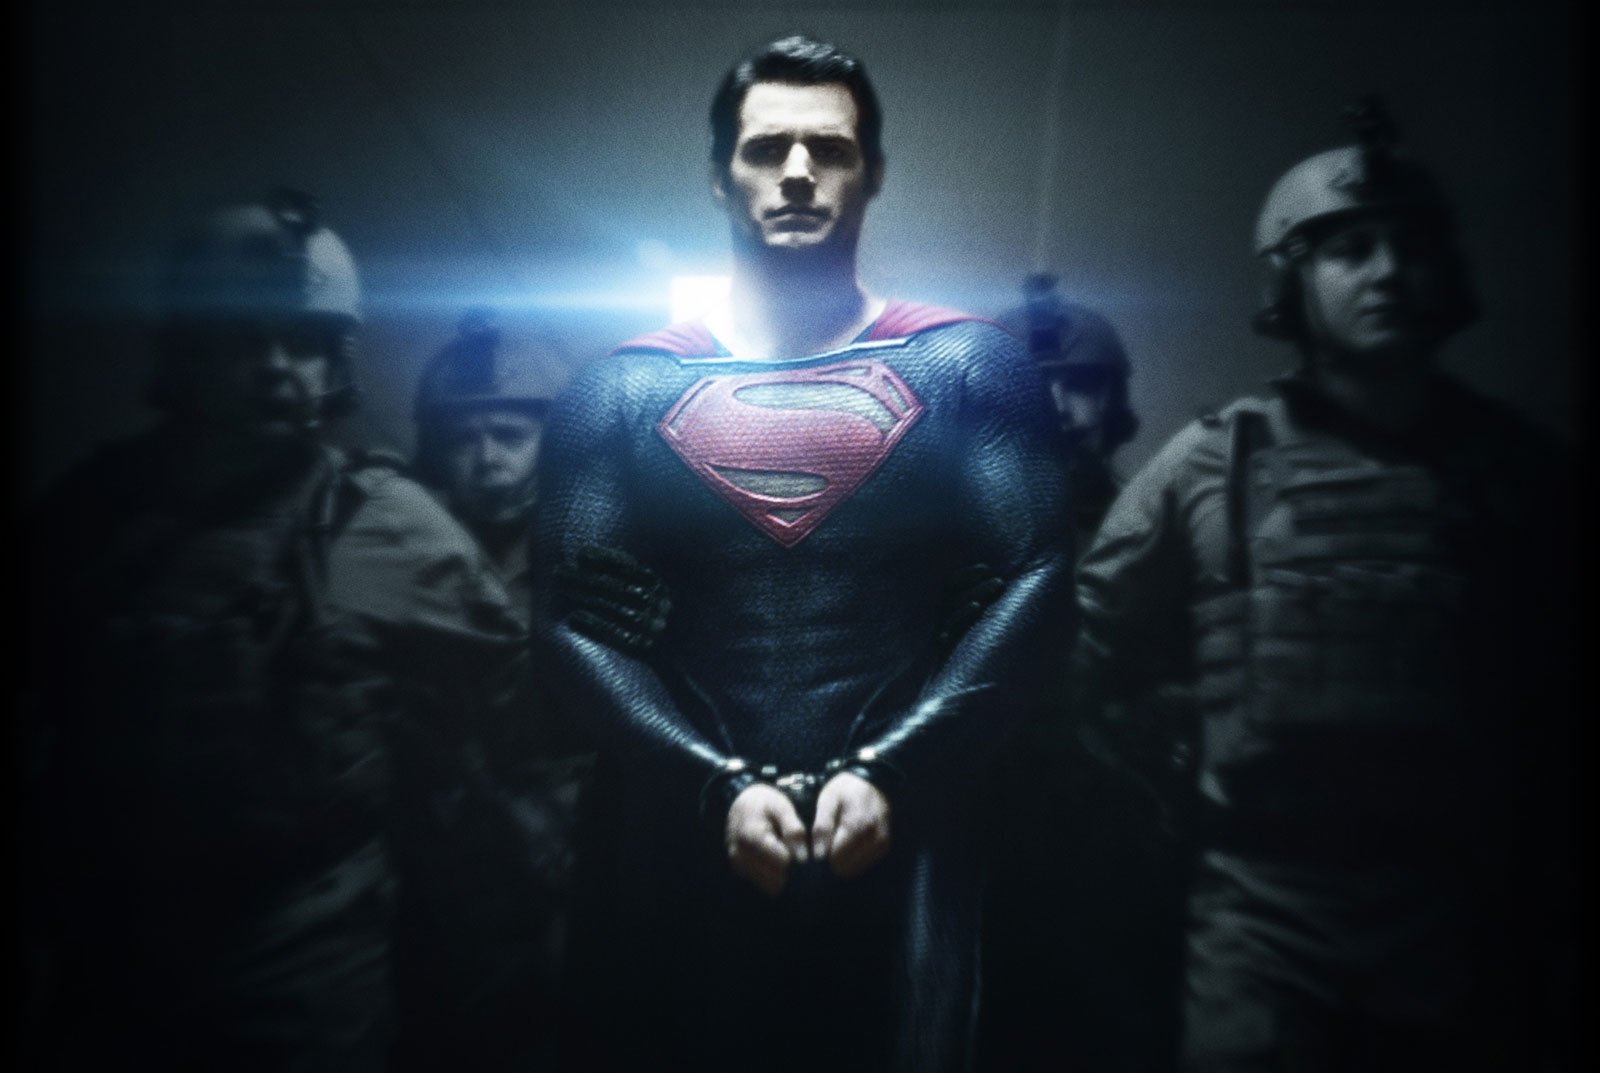 Henry Cavill's Superman saves the film, as well as a bus of schoolchildren.